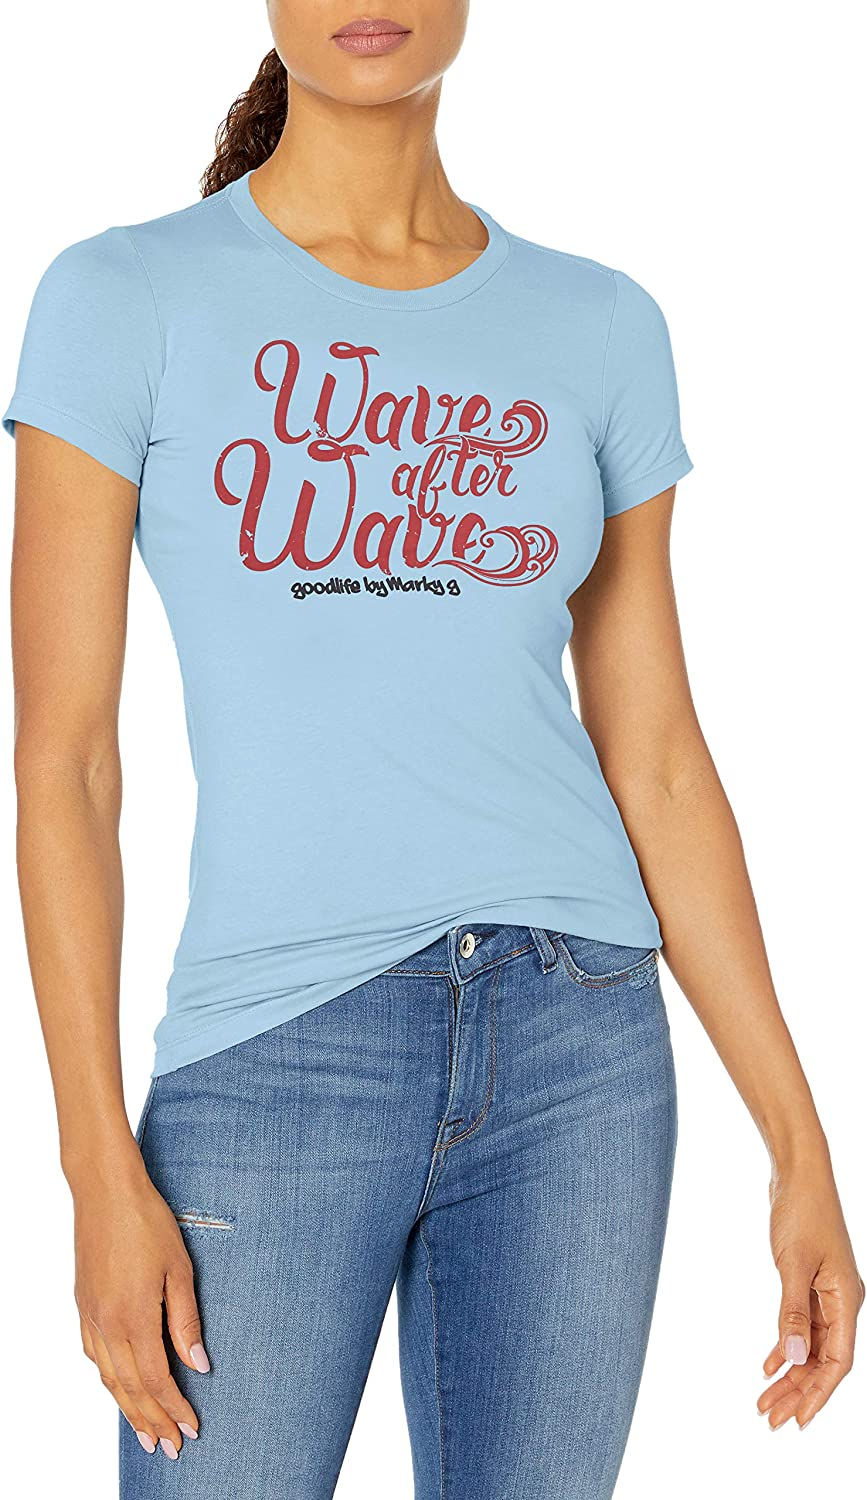 Marky G Apparel Womens Casual Short Sleeve Crewneck Tops Slim Fit T-Shirt Wave Printed